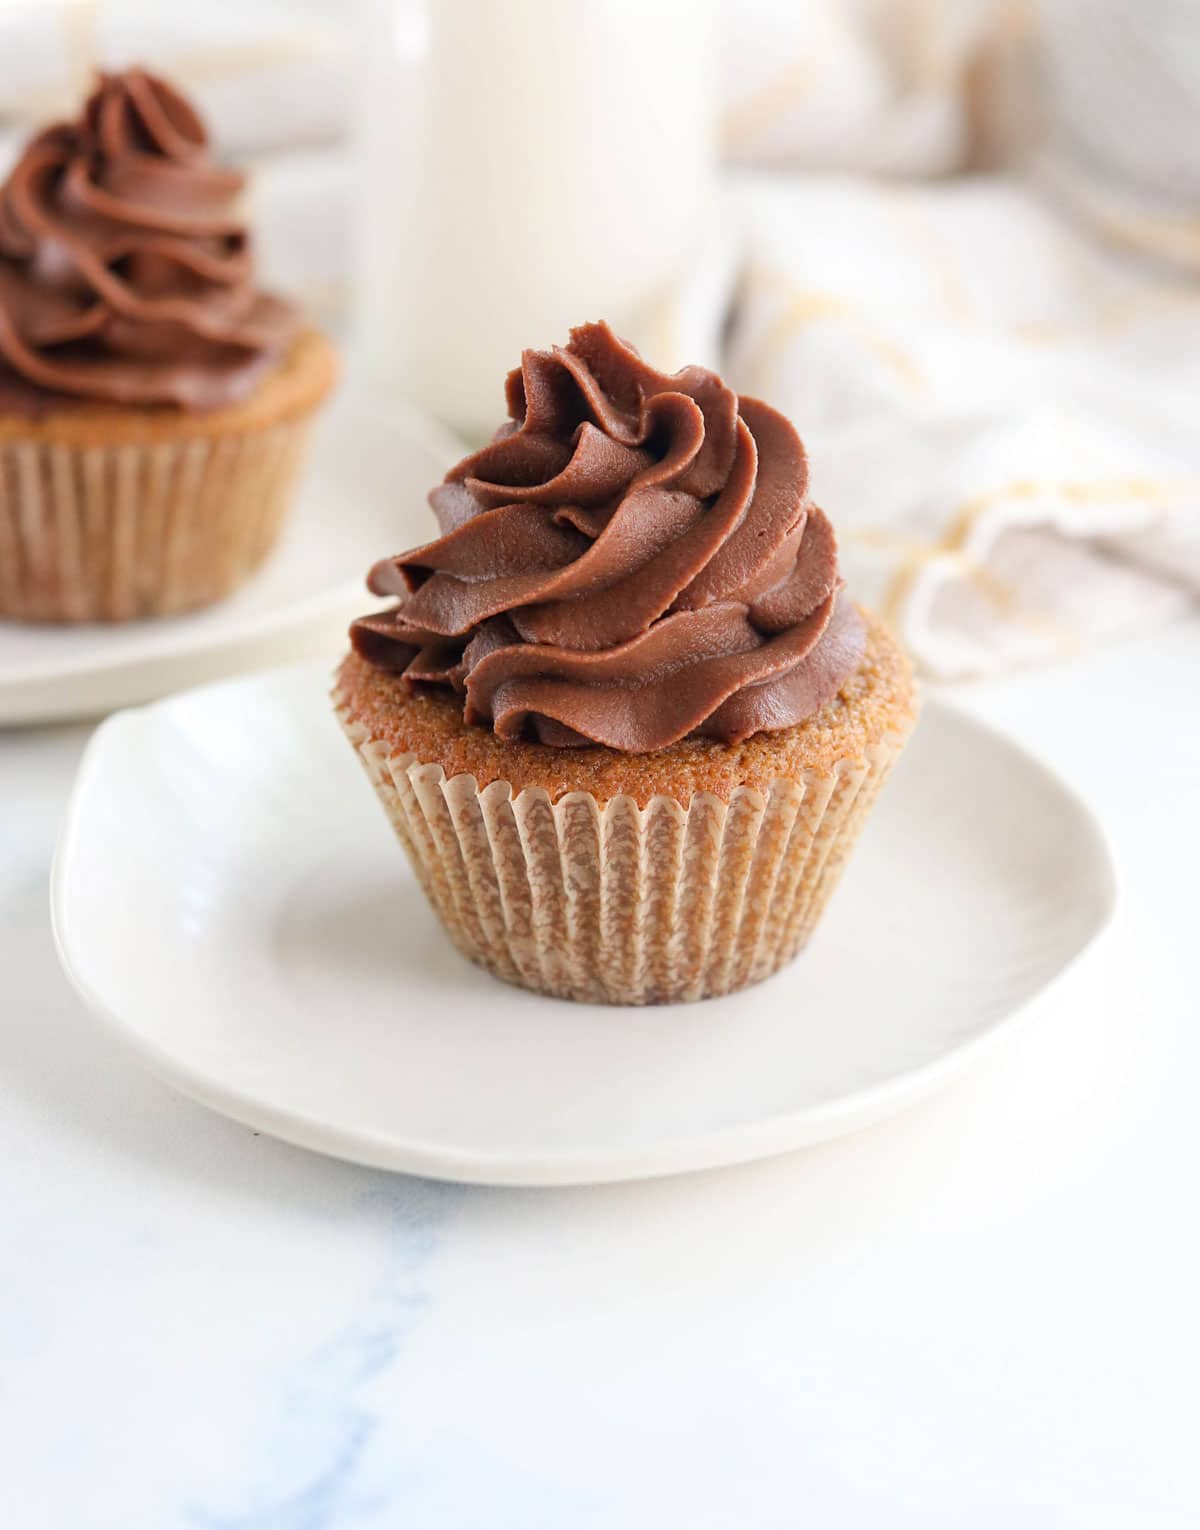 coconut flour cupcake with chocolate piped frosting